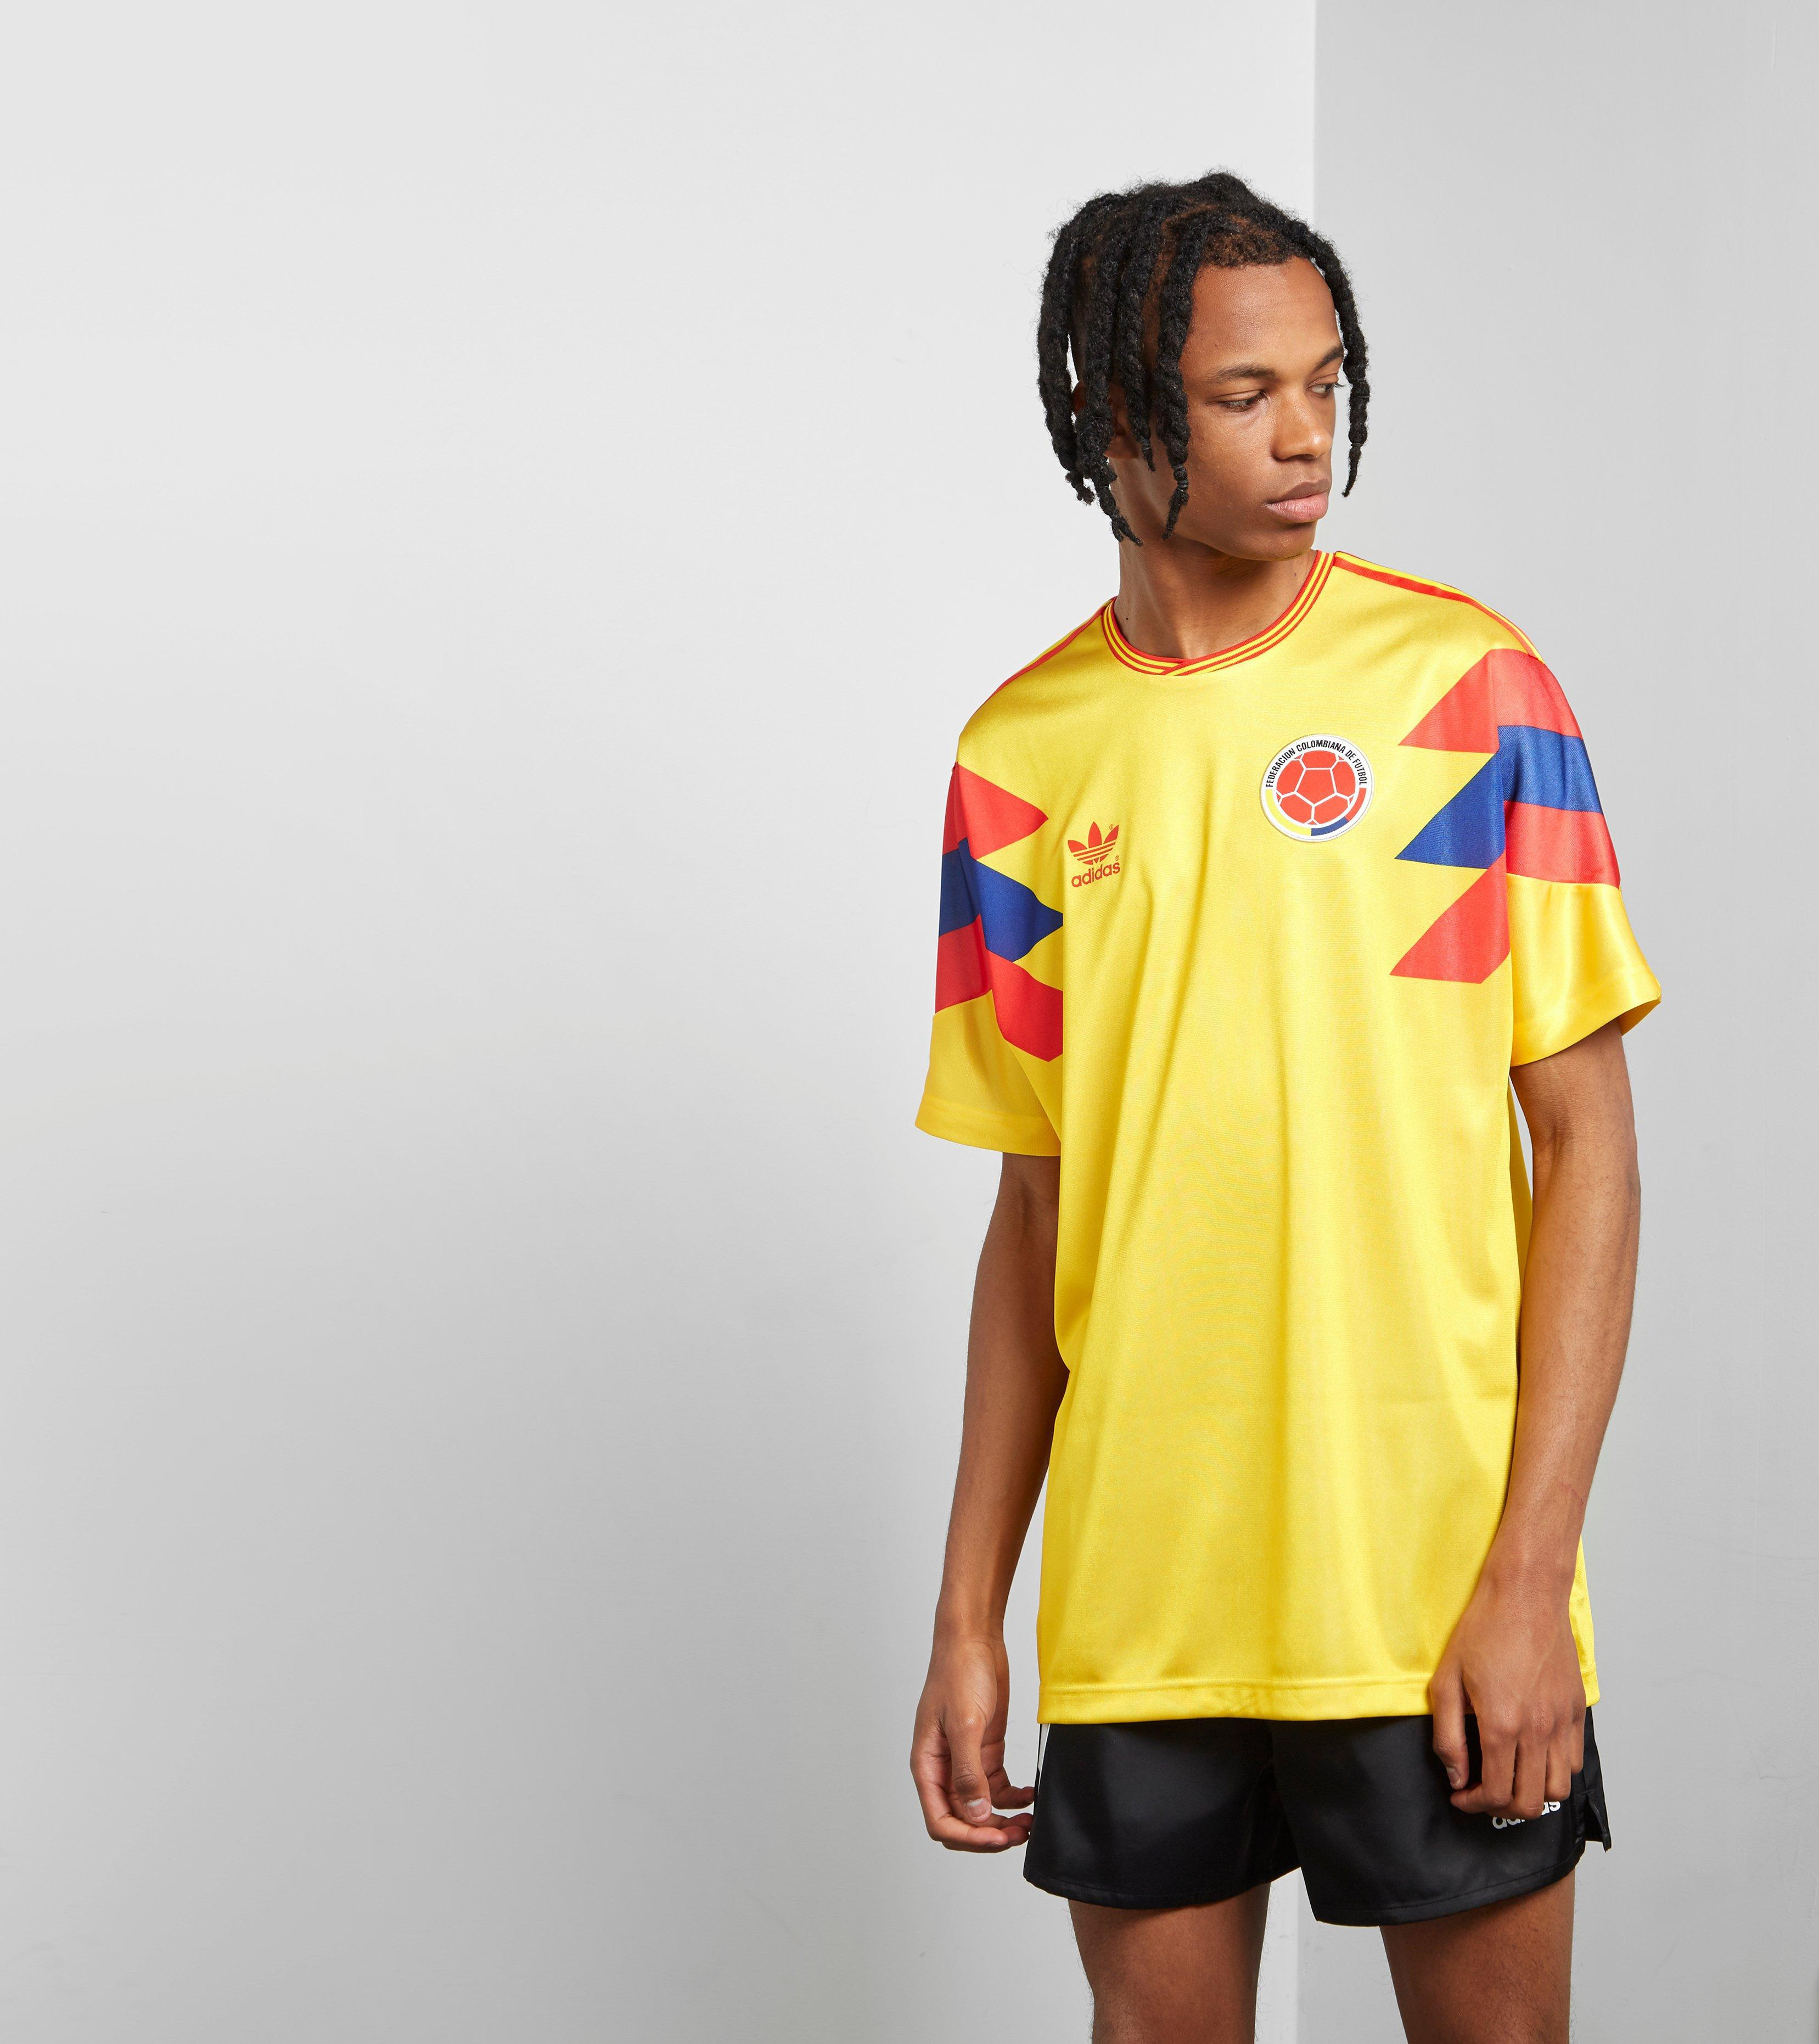 Lyst Adidas Originals Colombia 1990 Football Jersey In Yellow For Men